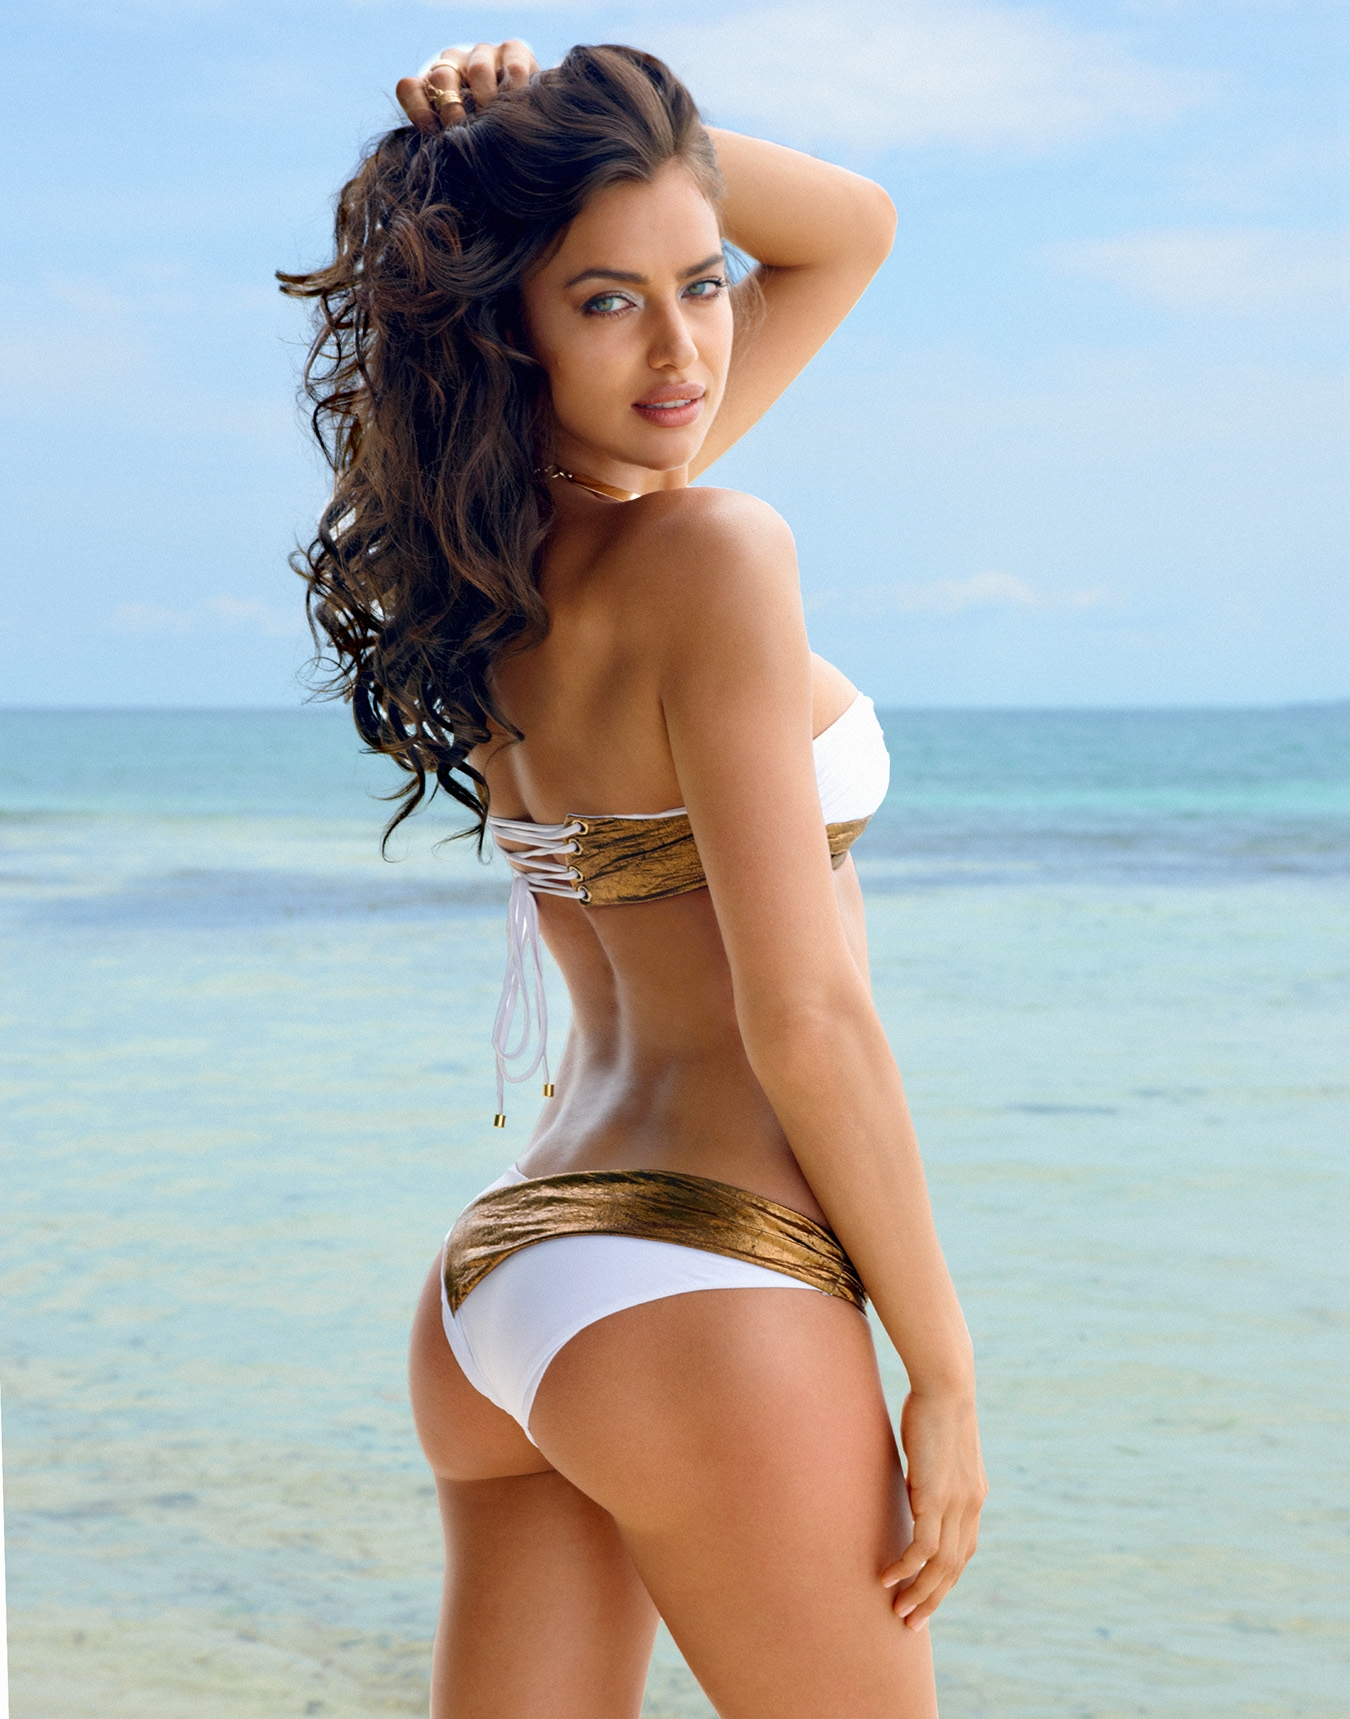 Irina shayk hot clipart